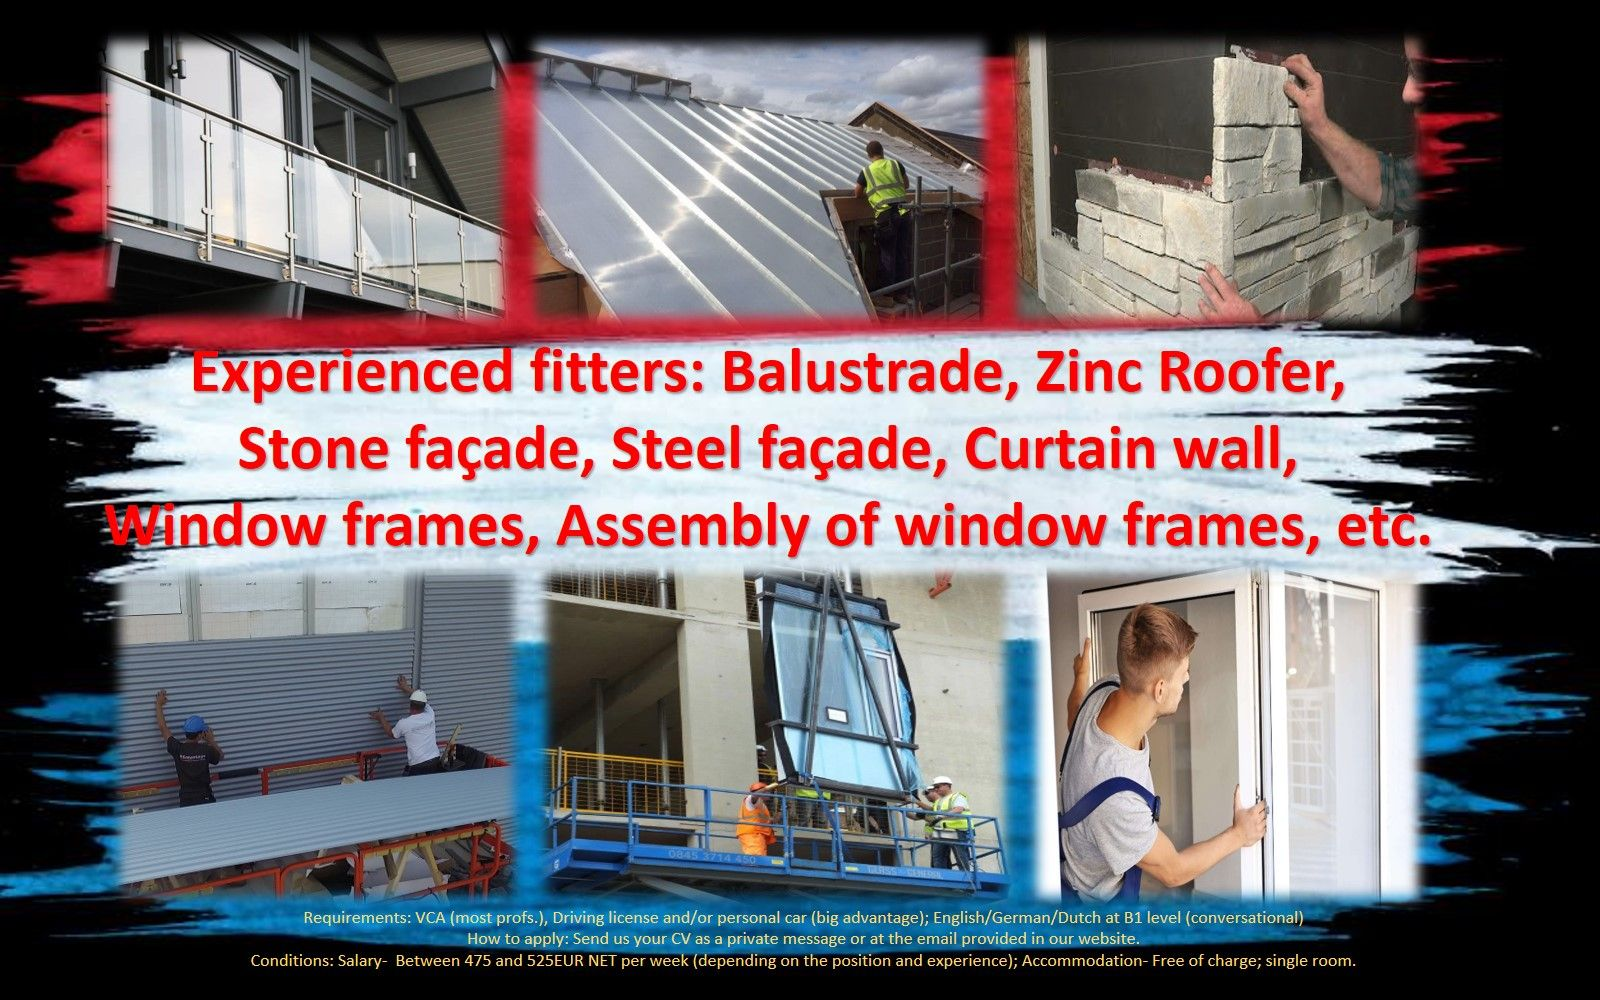 Jobs Netherlands Work Holland Experienced fitter, Aluminium fitter, PVC fitter, Roofer, Assembly pvc, Steel facade, Curtain wall fitter, Stone facade, Balustrade, job work in the Netherlands Holland Amsterdam, Eindhoven, Rotterdam, Haarlem